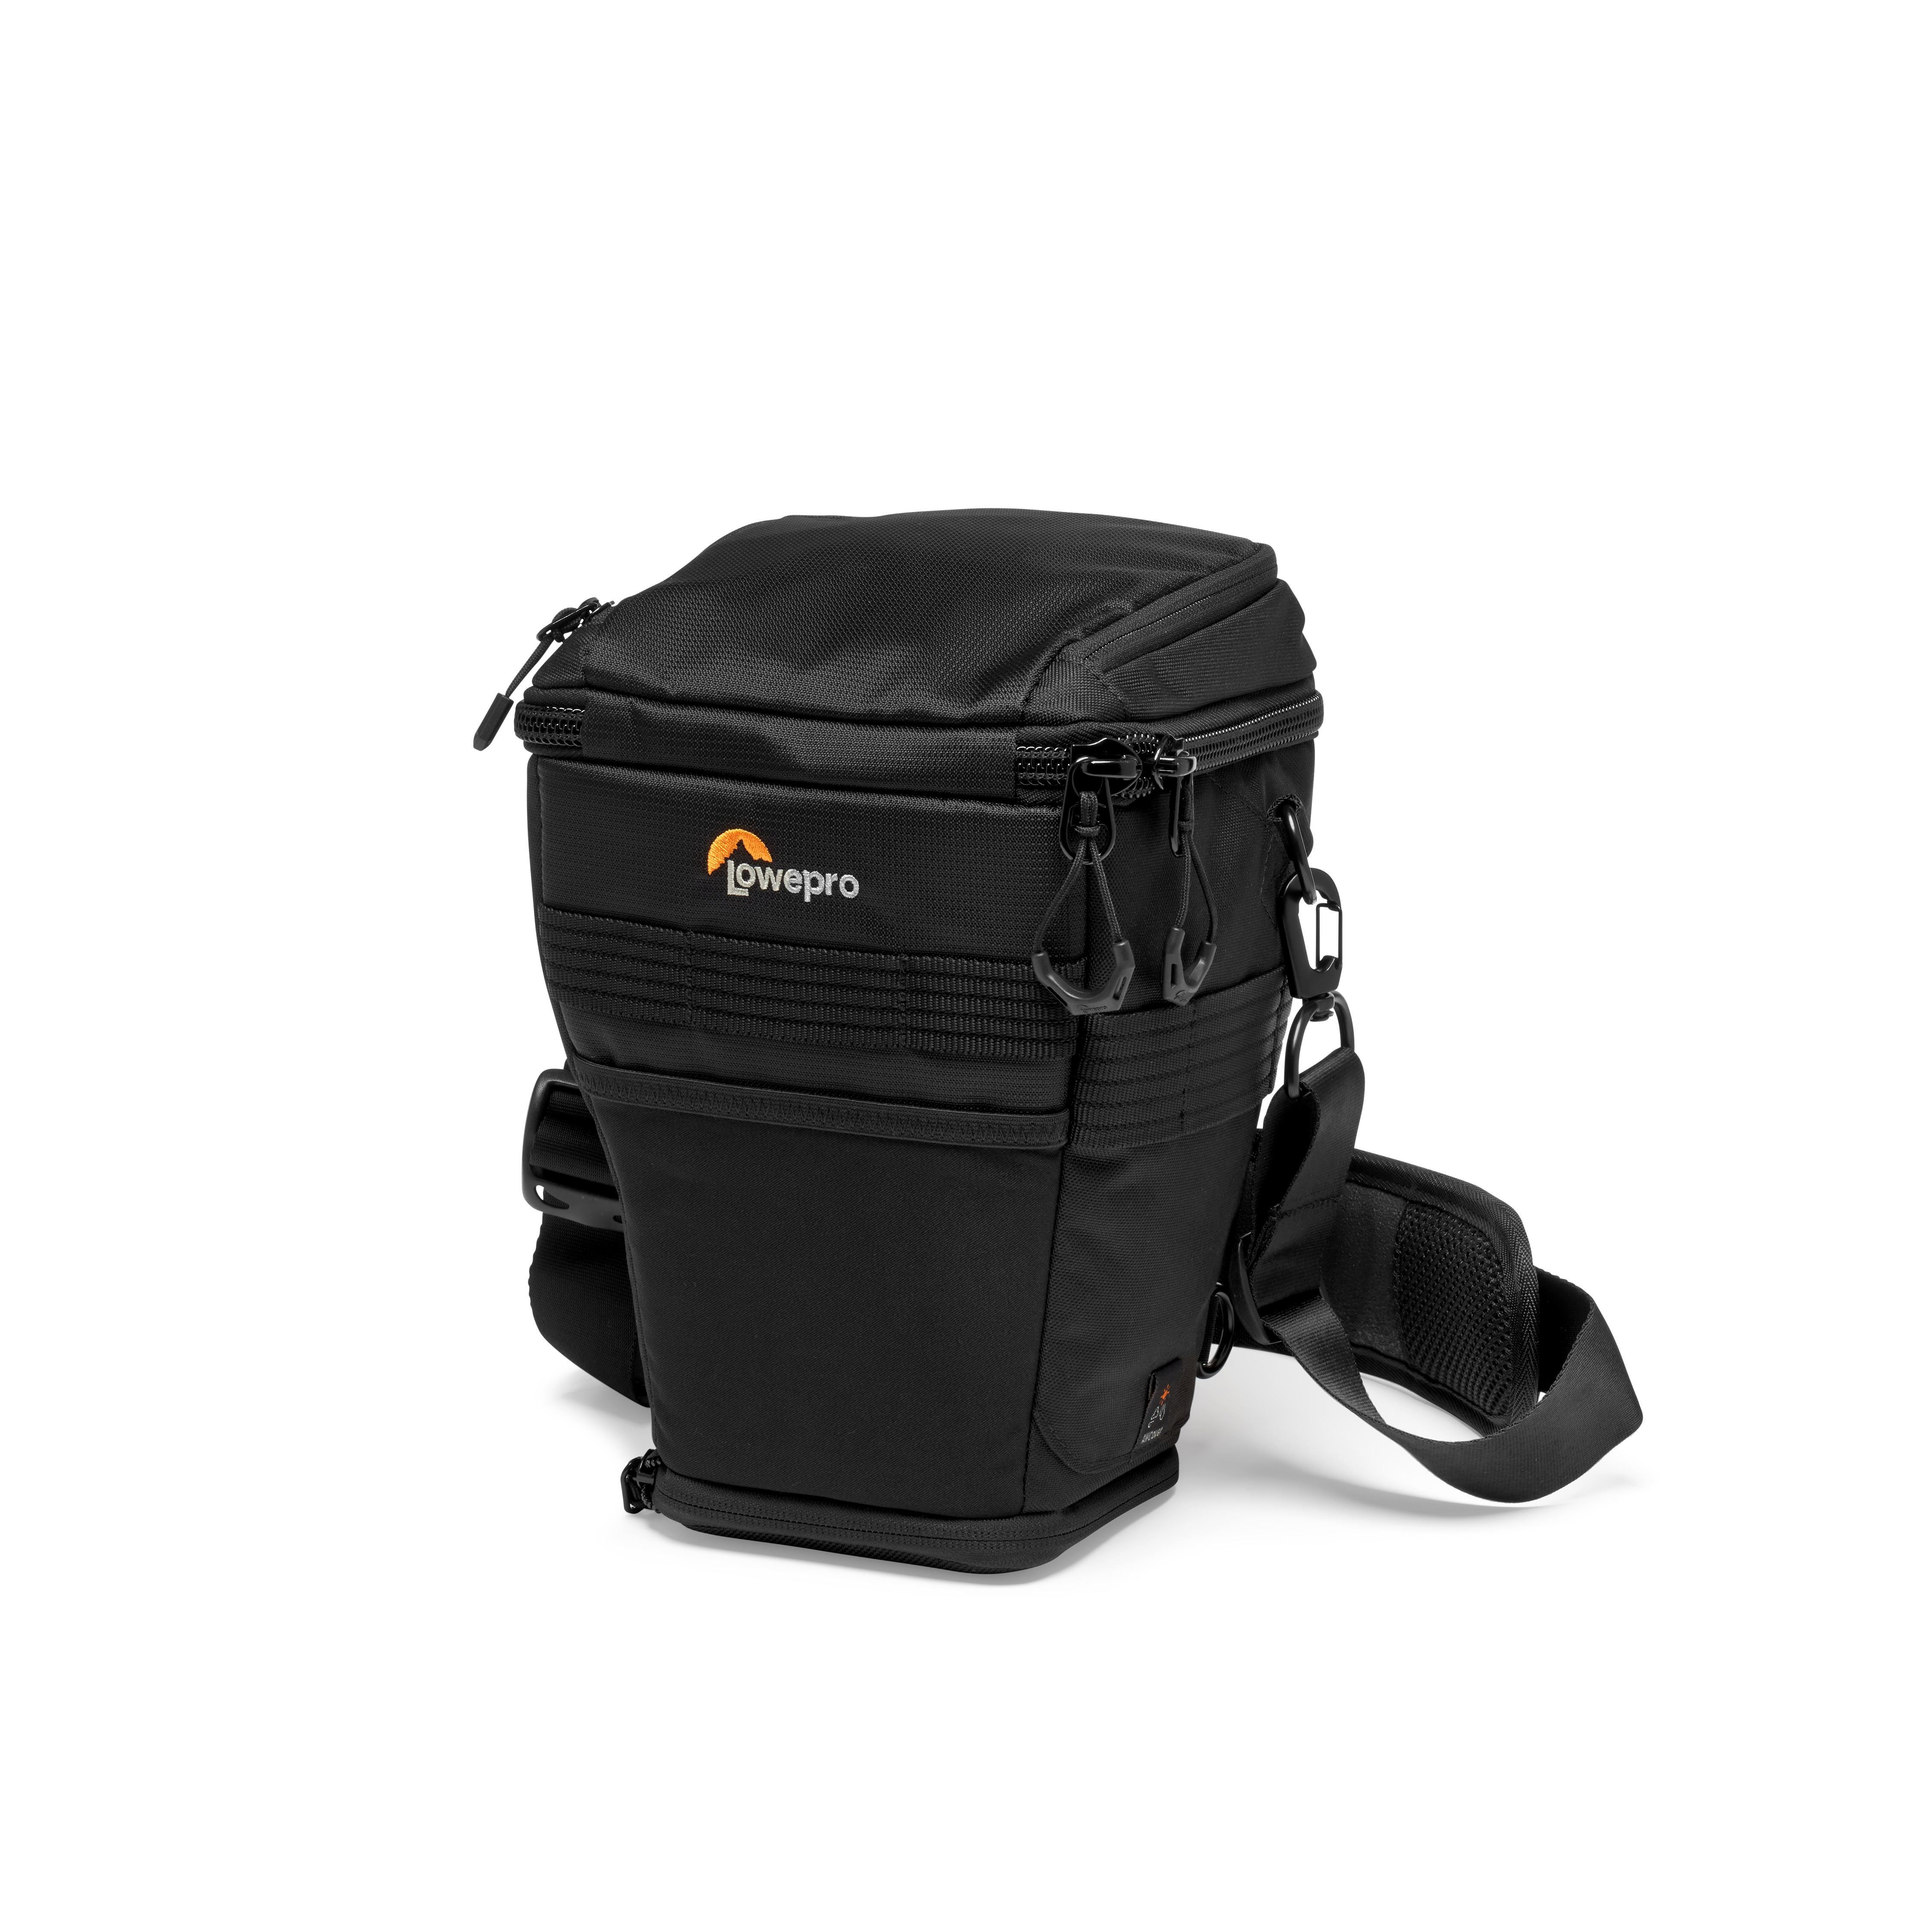 Image of Lowepro ProTactic TLZ 70 AW Toploader